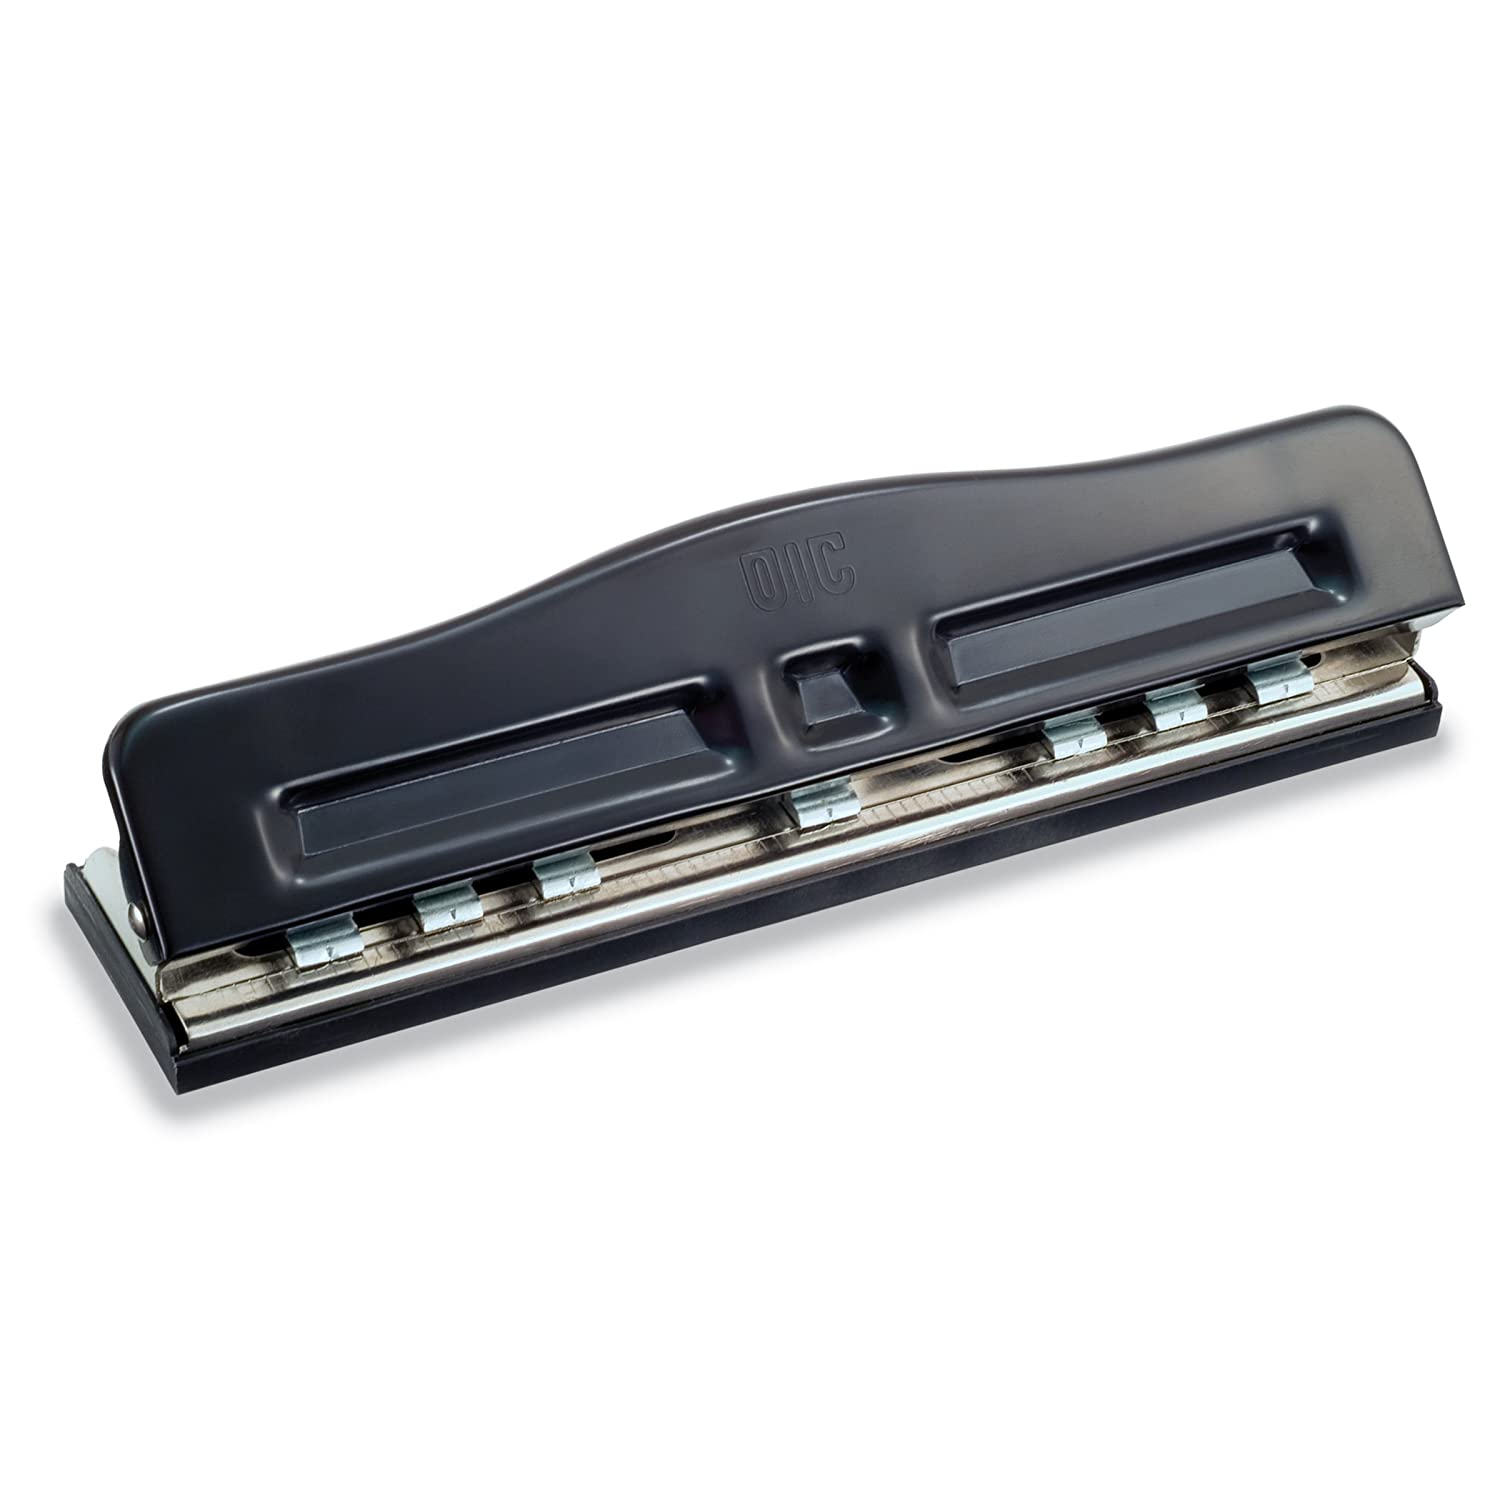 Officemate Adjustable 2-7 Hole Punch, 5-11 Sheet Capacity, Black with Chrome Trim (90070) Officemate OIC